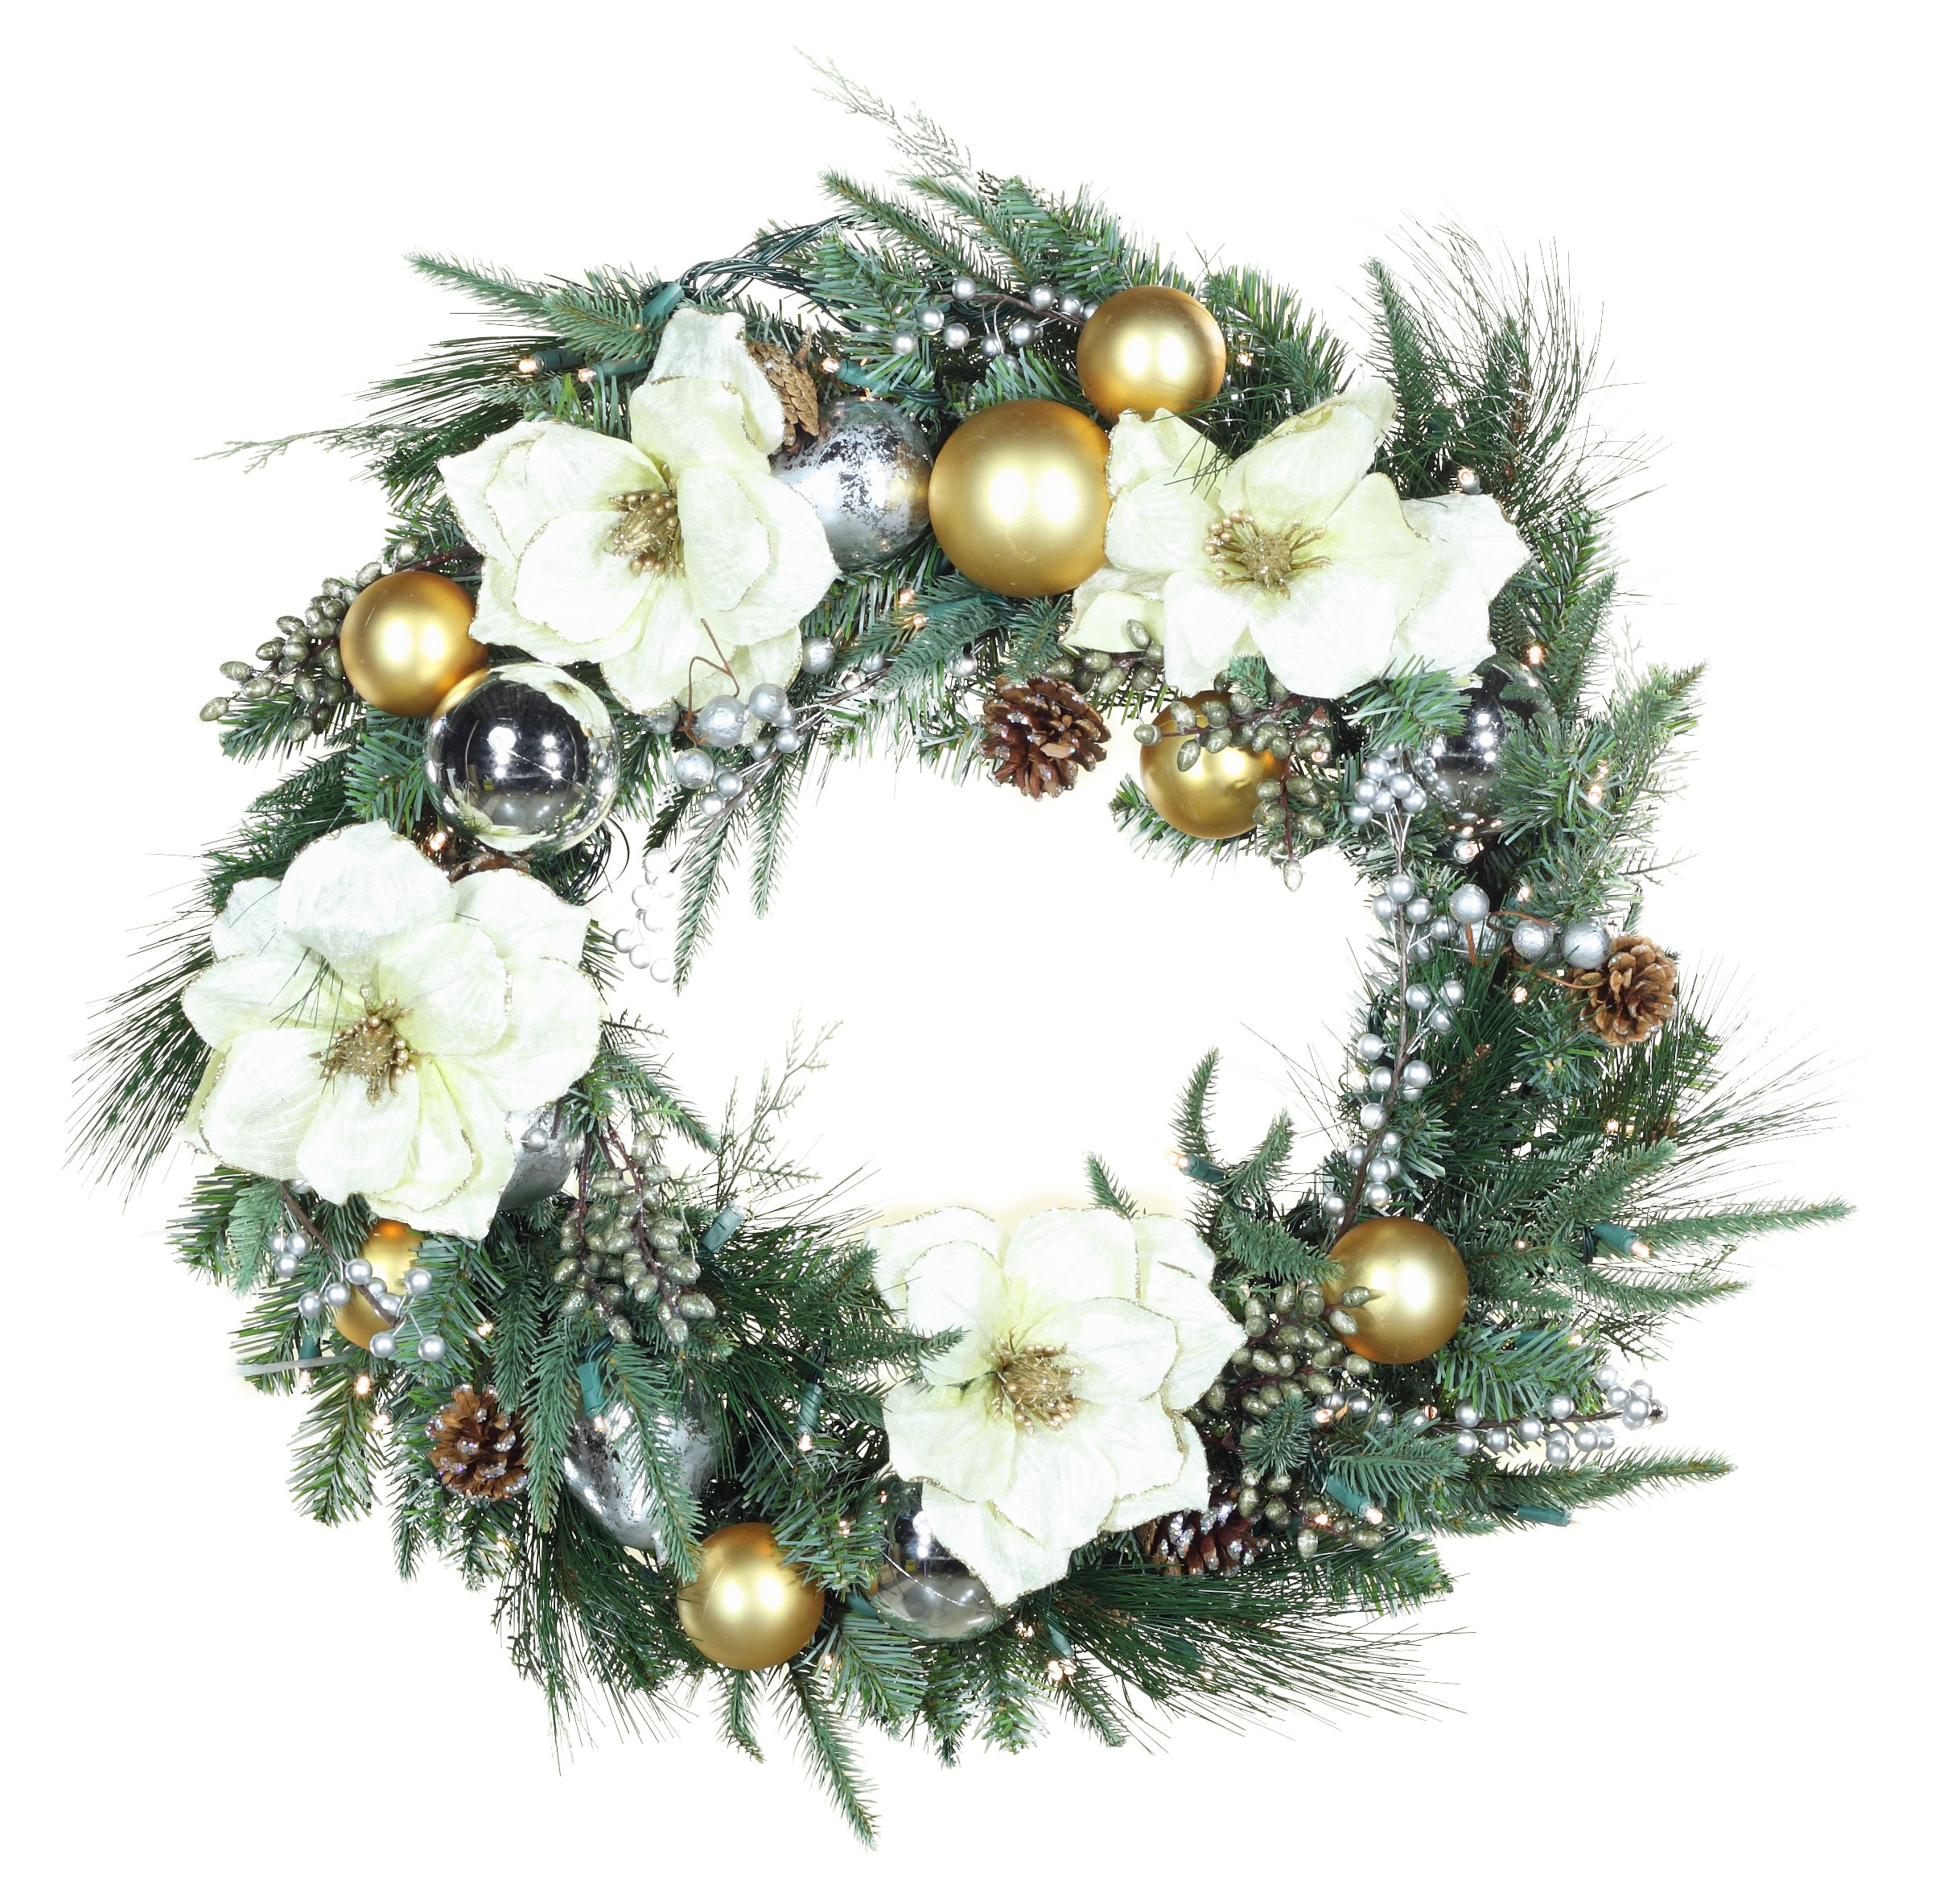 Decorative Wreaths Aspen Silver Battery Operated Led